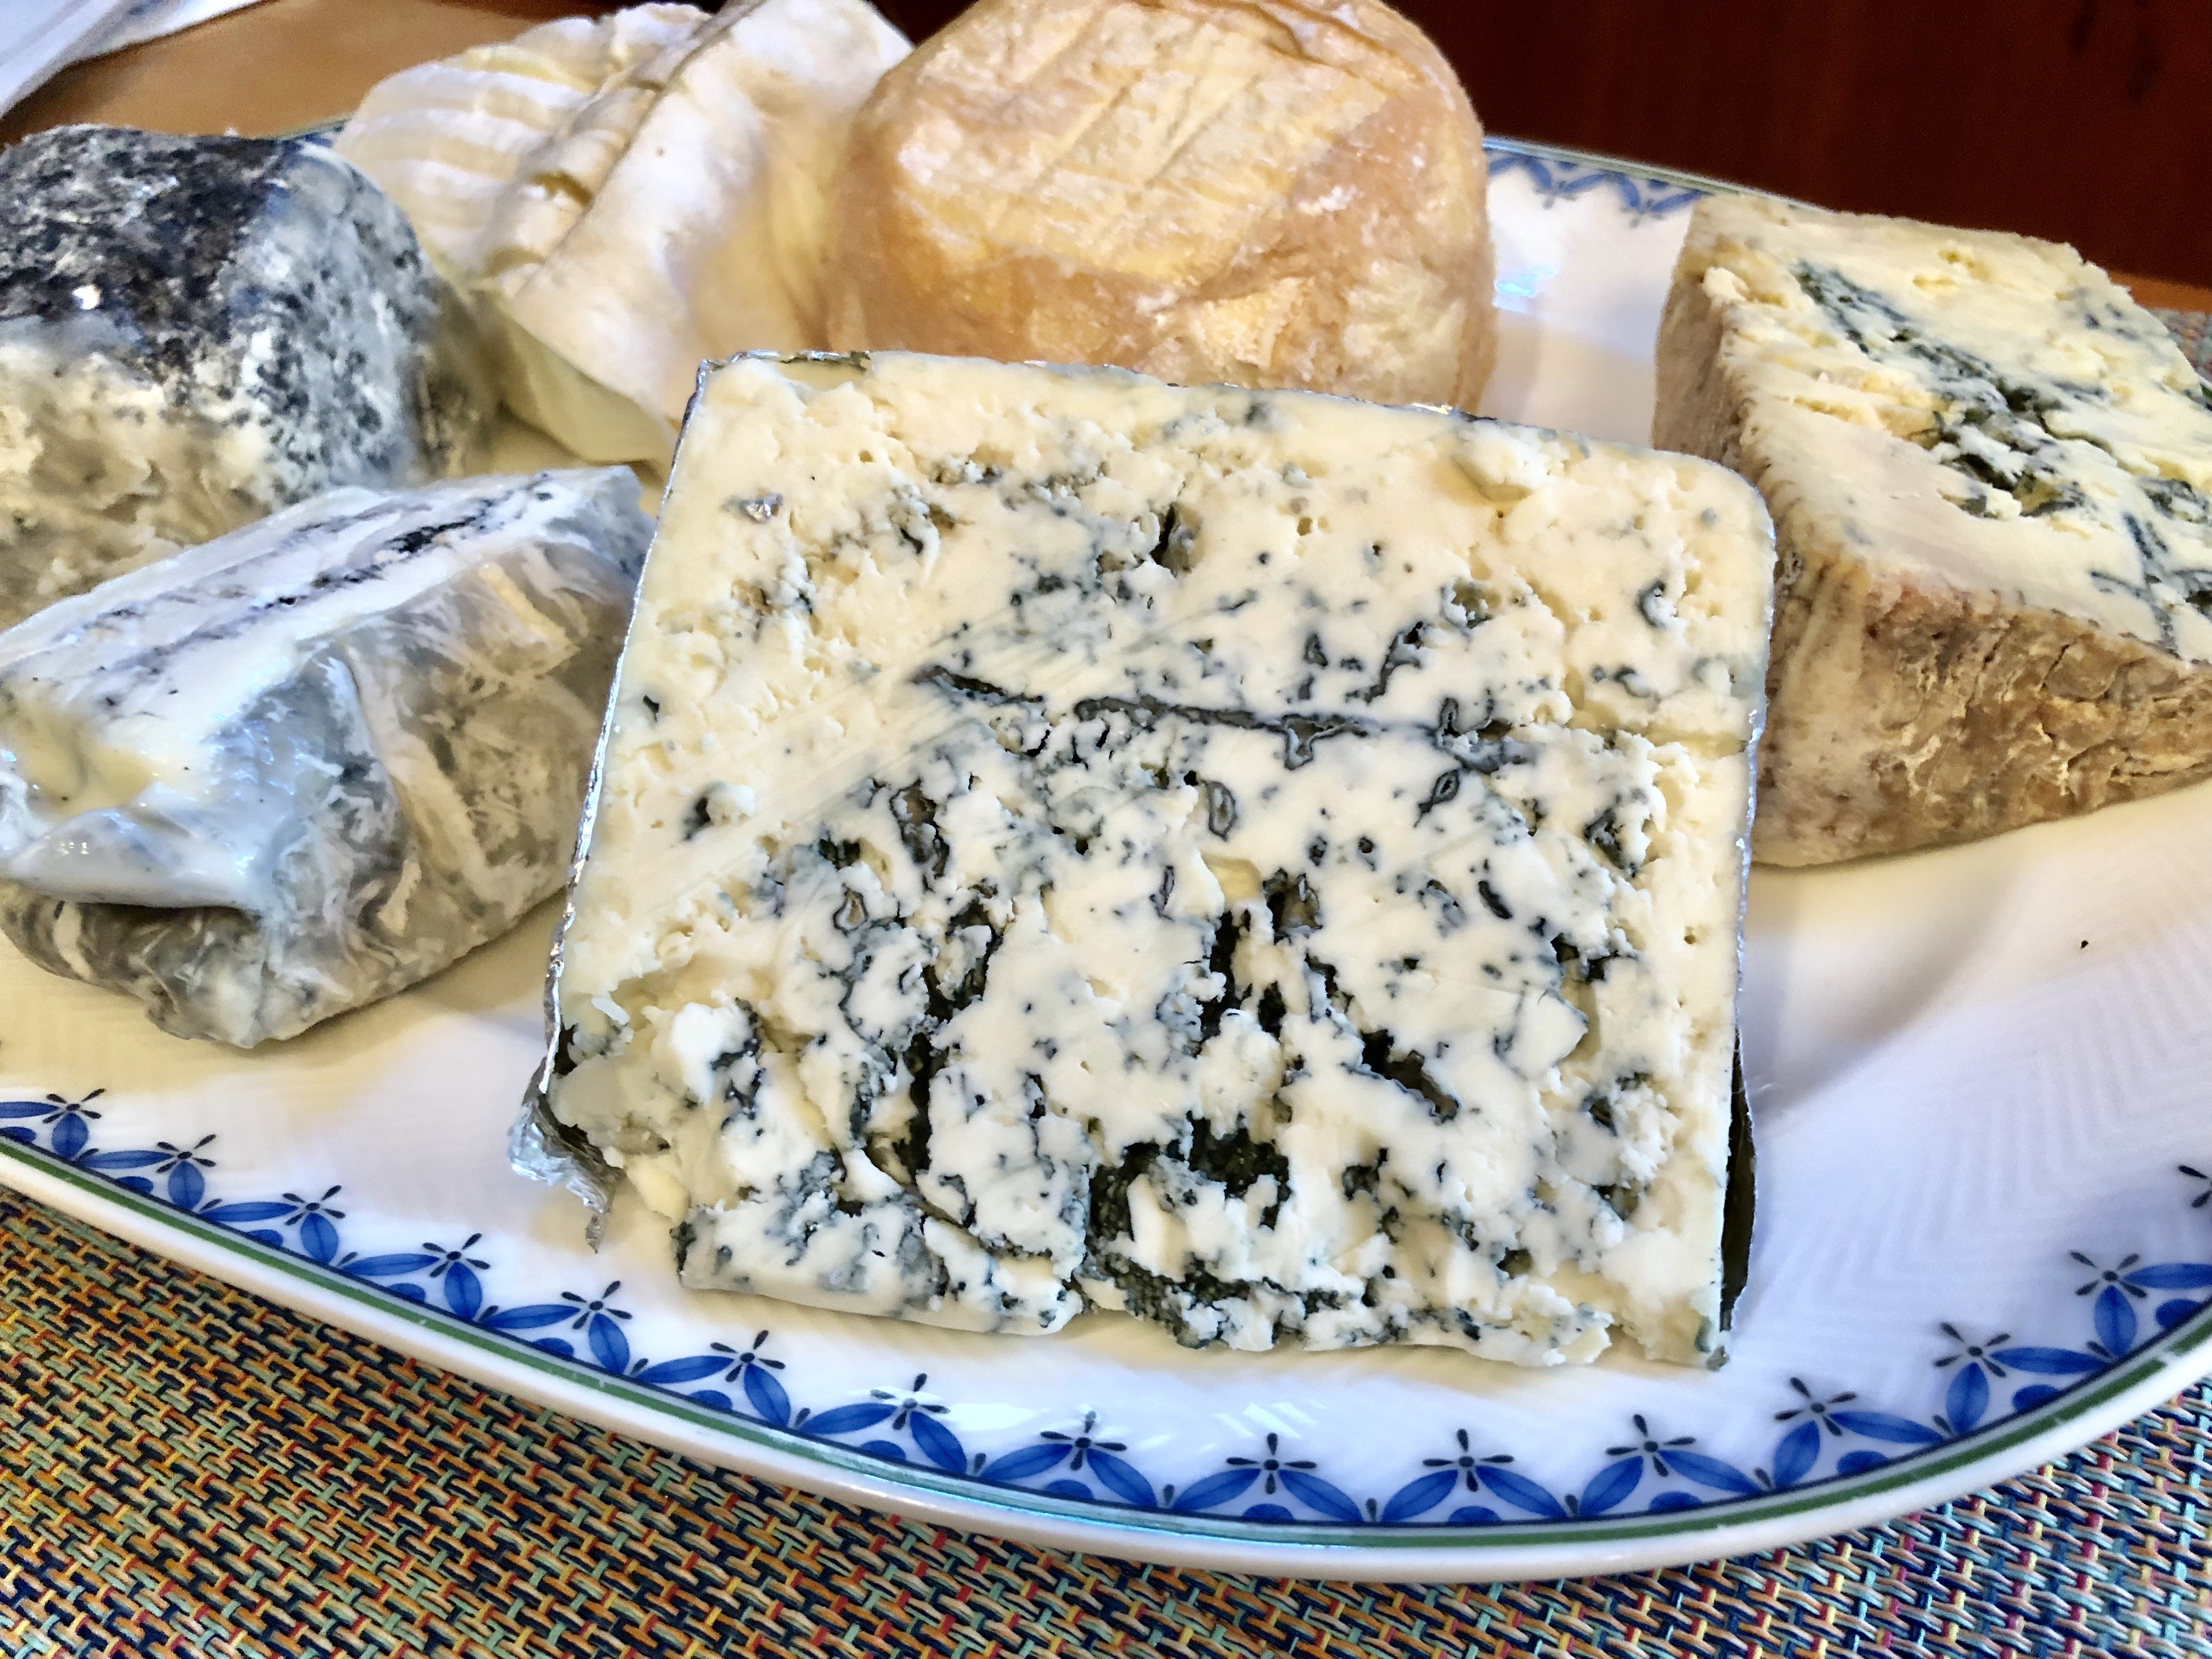 Buttermilk Blue, a raw milk cheese from Wisconsin, is a versatile and approachable cheese that can still stand out on any cheese platter.